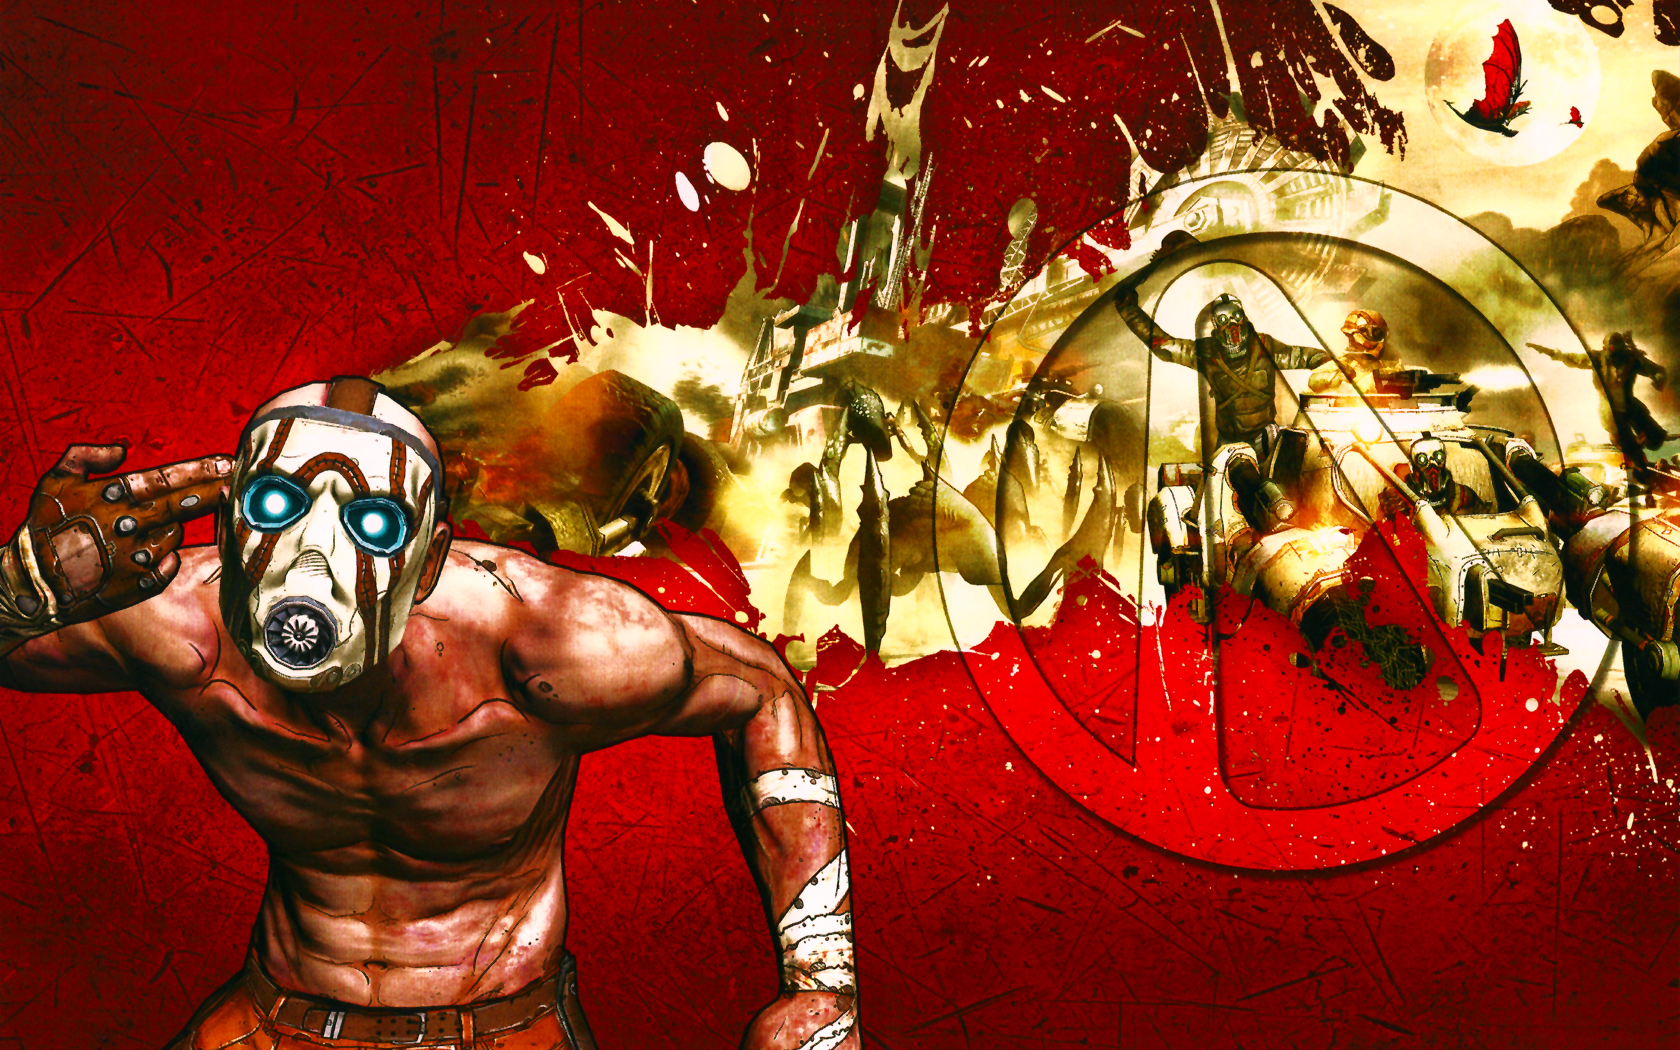 Best 57+ Borderlands Wallpapers on HipWallpapers